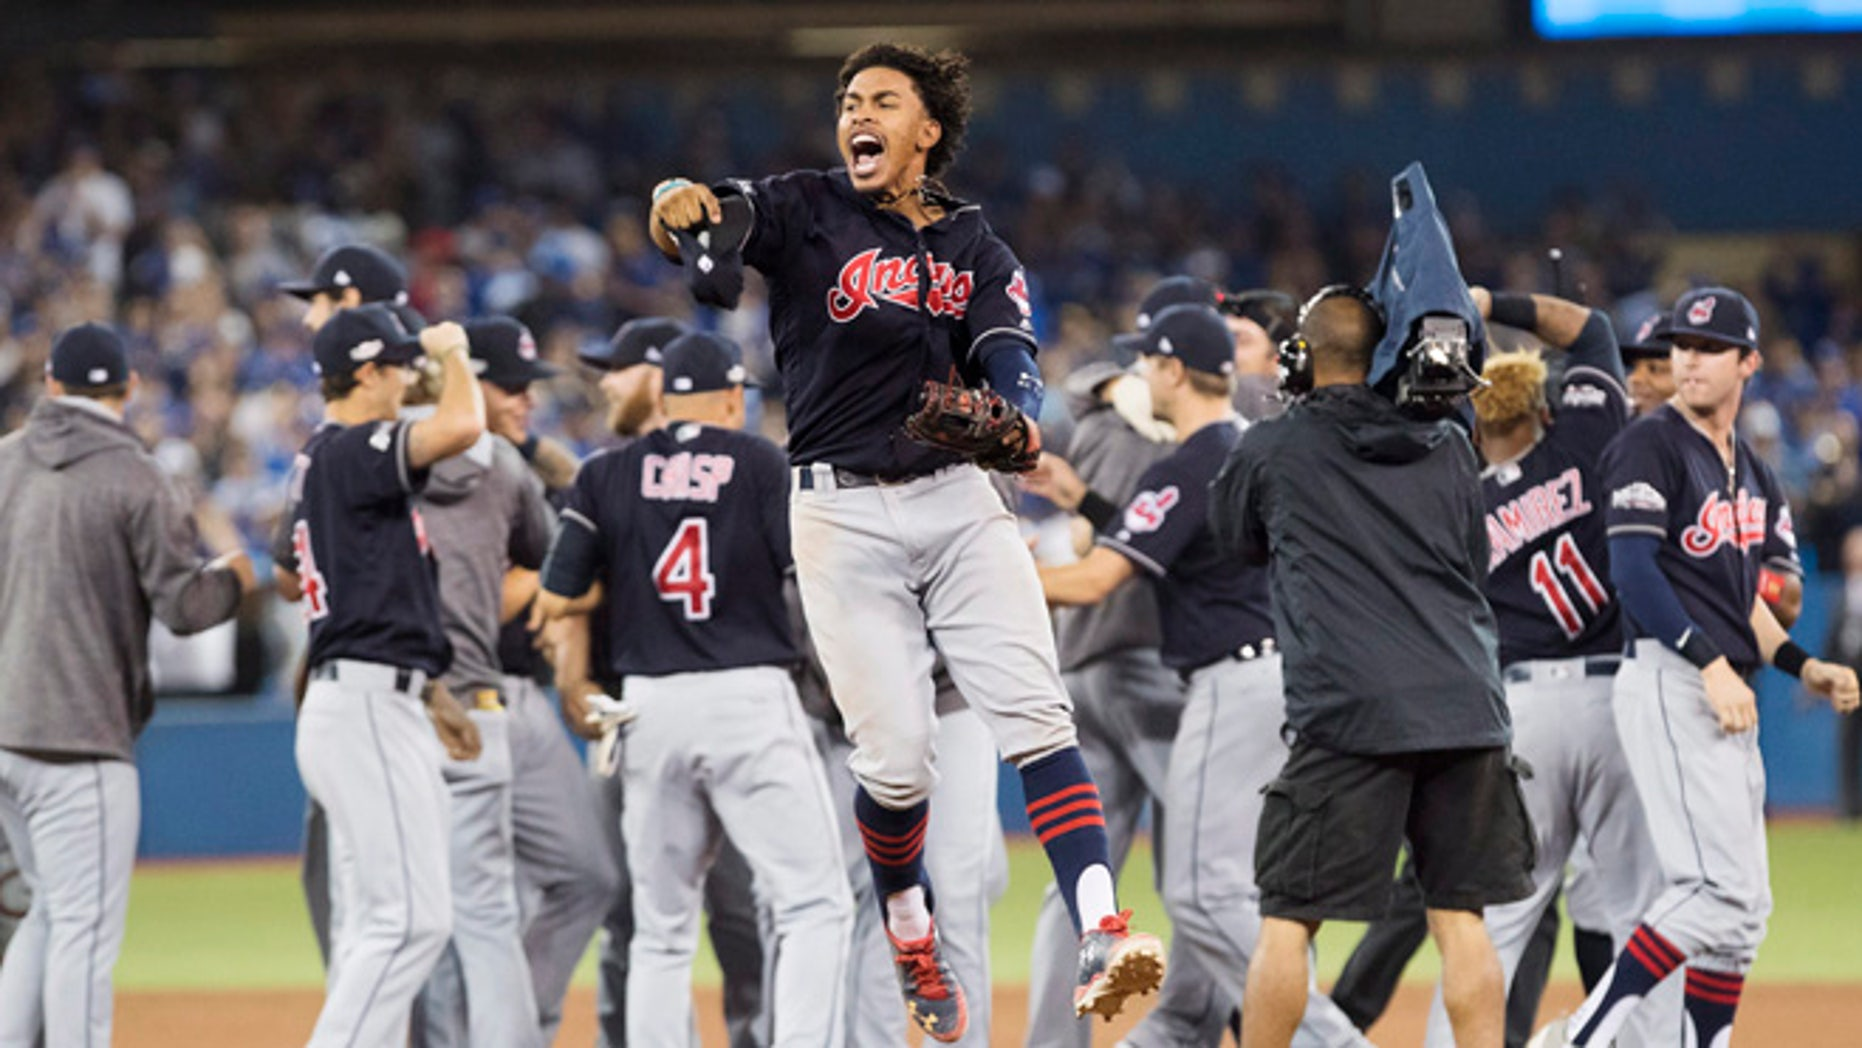 Cleveland Indians shortstop Francisco Lindor celebrates after the Indians defeated the Toronto Blue Jays 3-0 Game 5 of the baseball American League Championship Series in Toronto on Wednesday, Oct. 19, 2016. (Mark Blinch/The Canadian Press via AP)